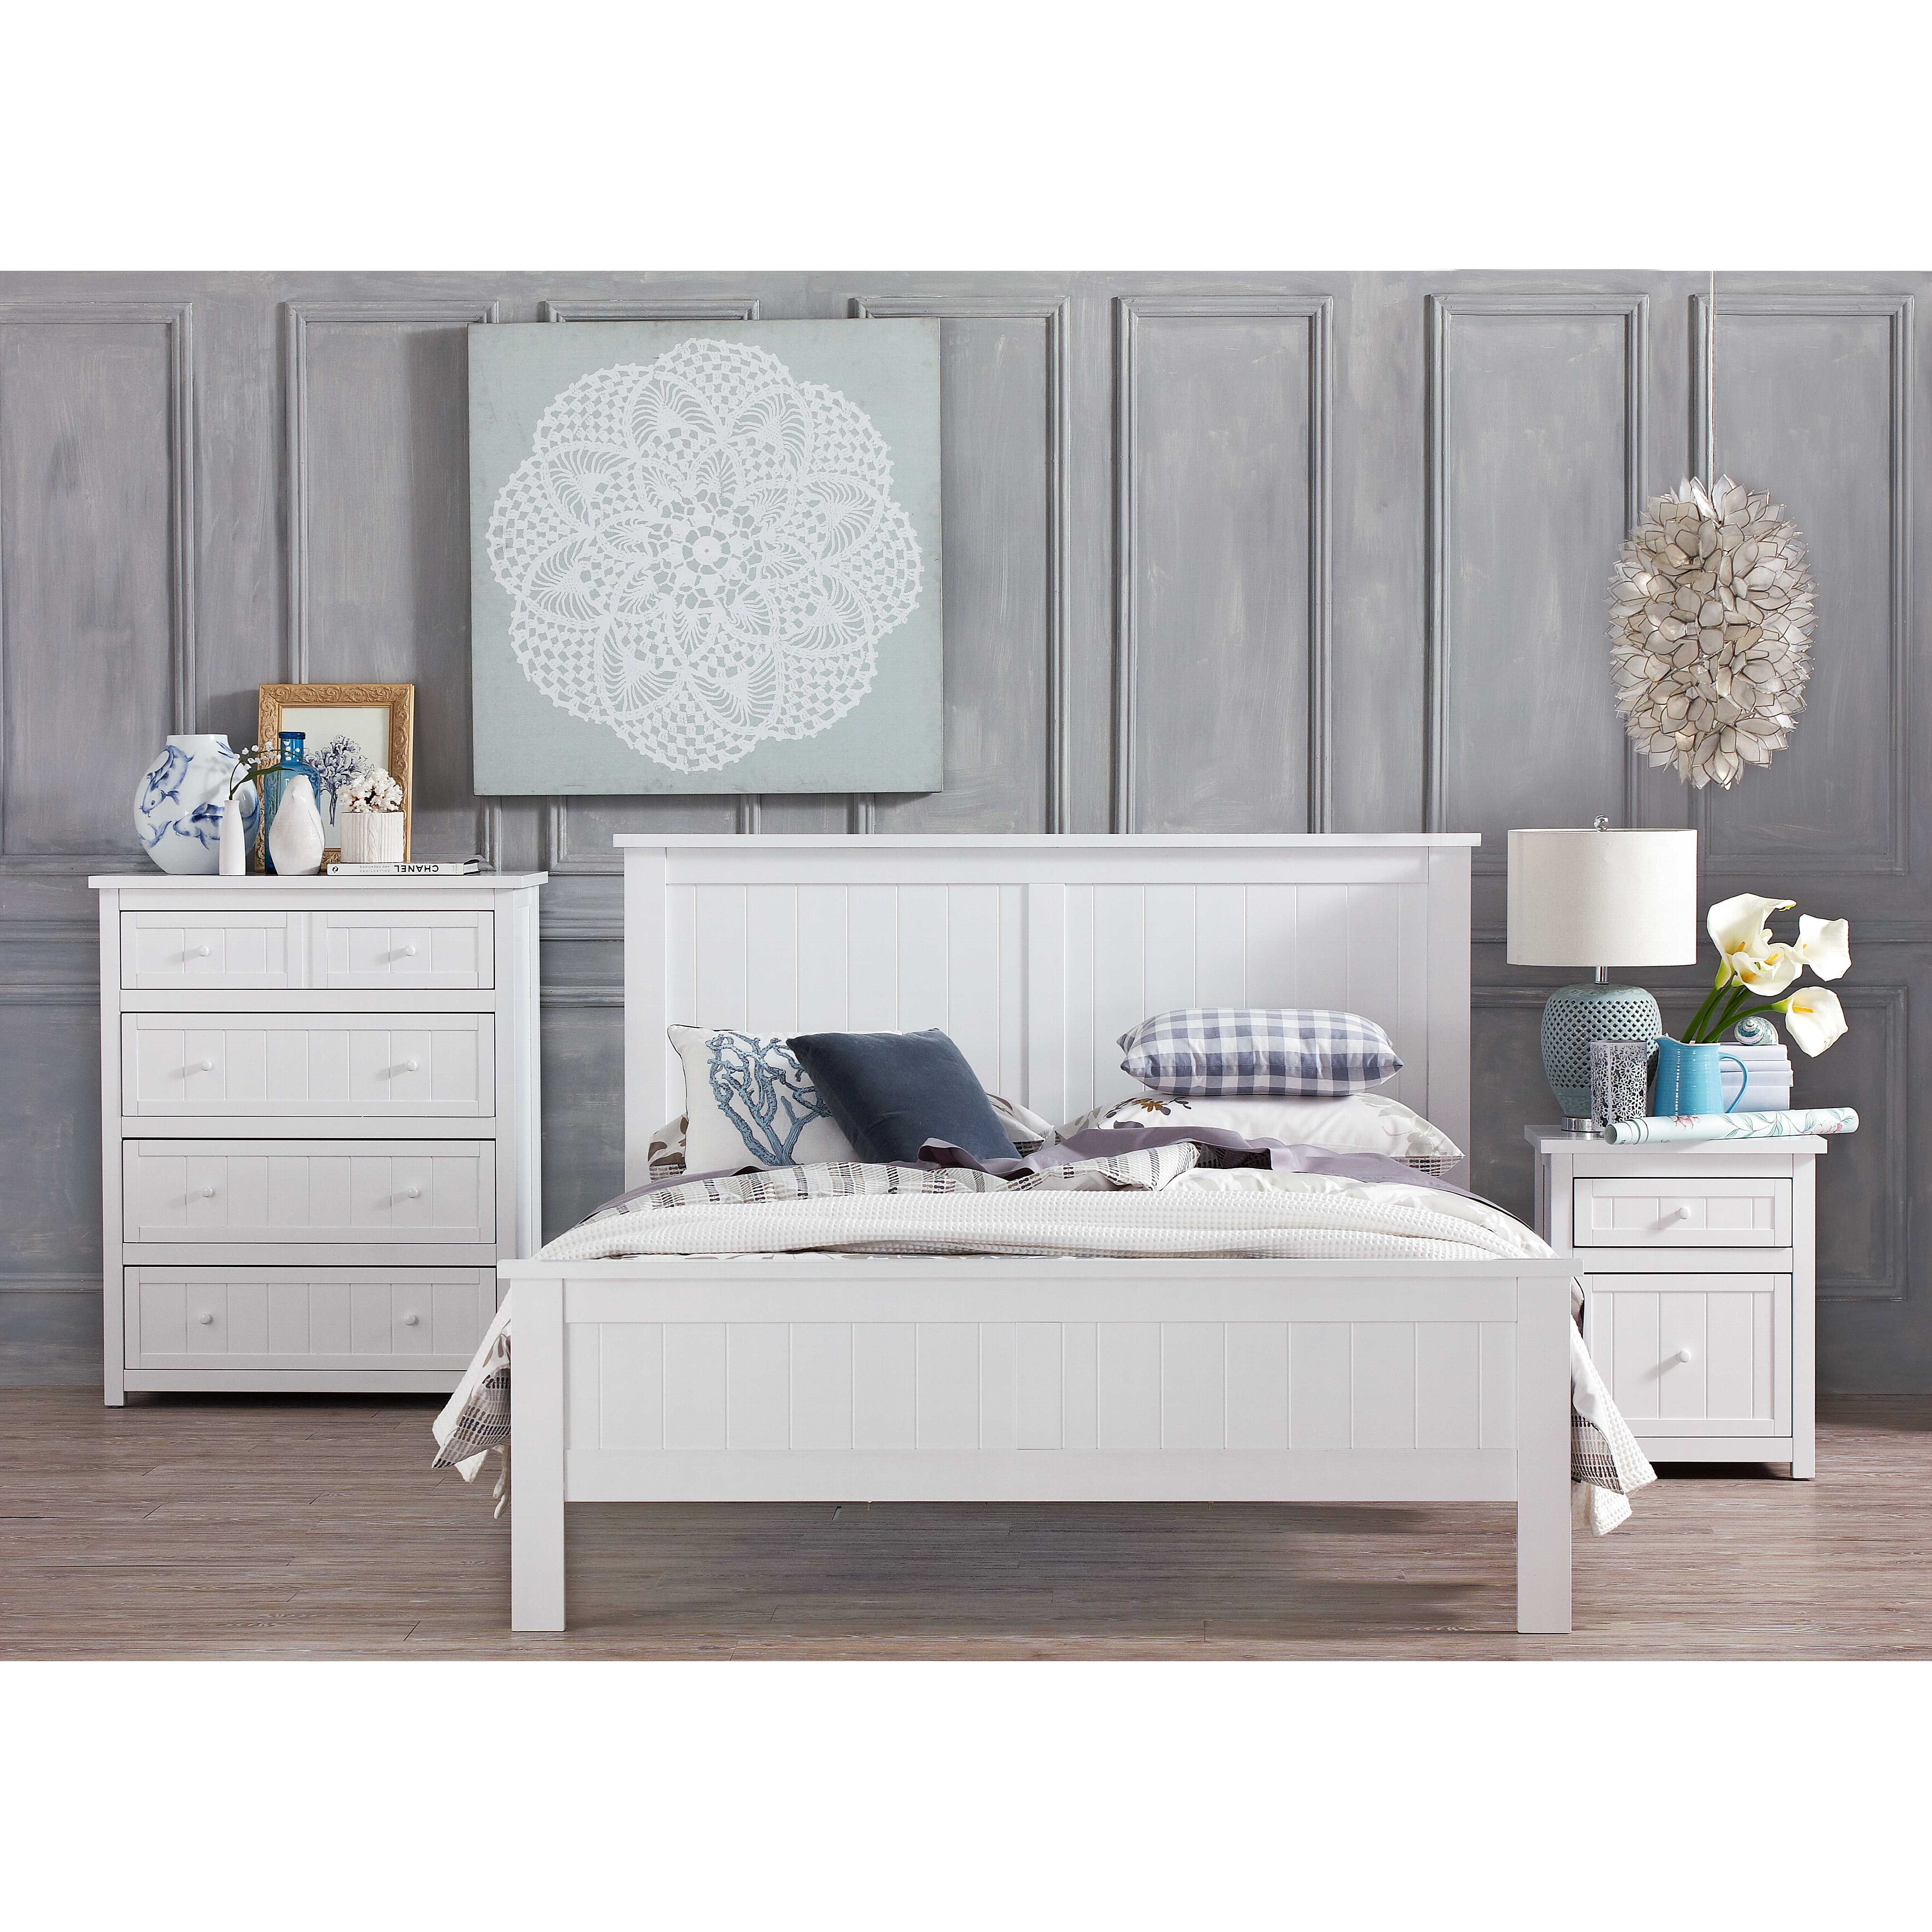 Cheap Bedroom Sets Las Vegas: Lewis 4-Piece Bedroom Suite From Domayne